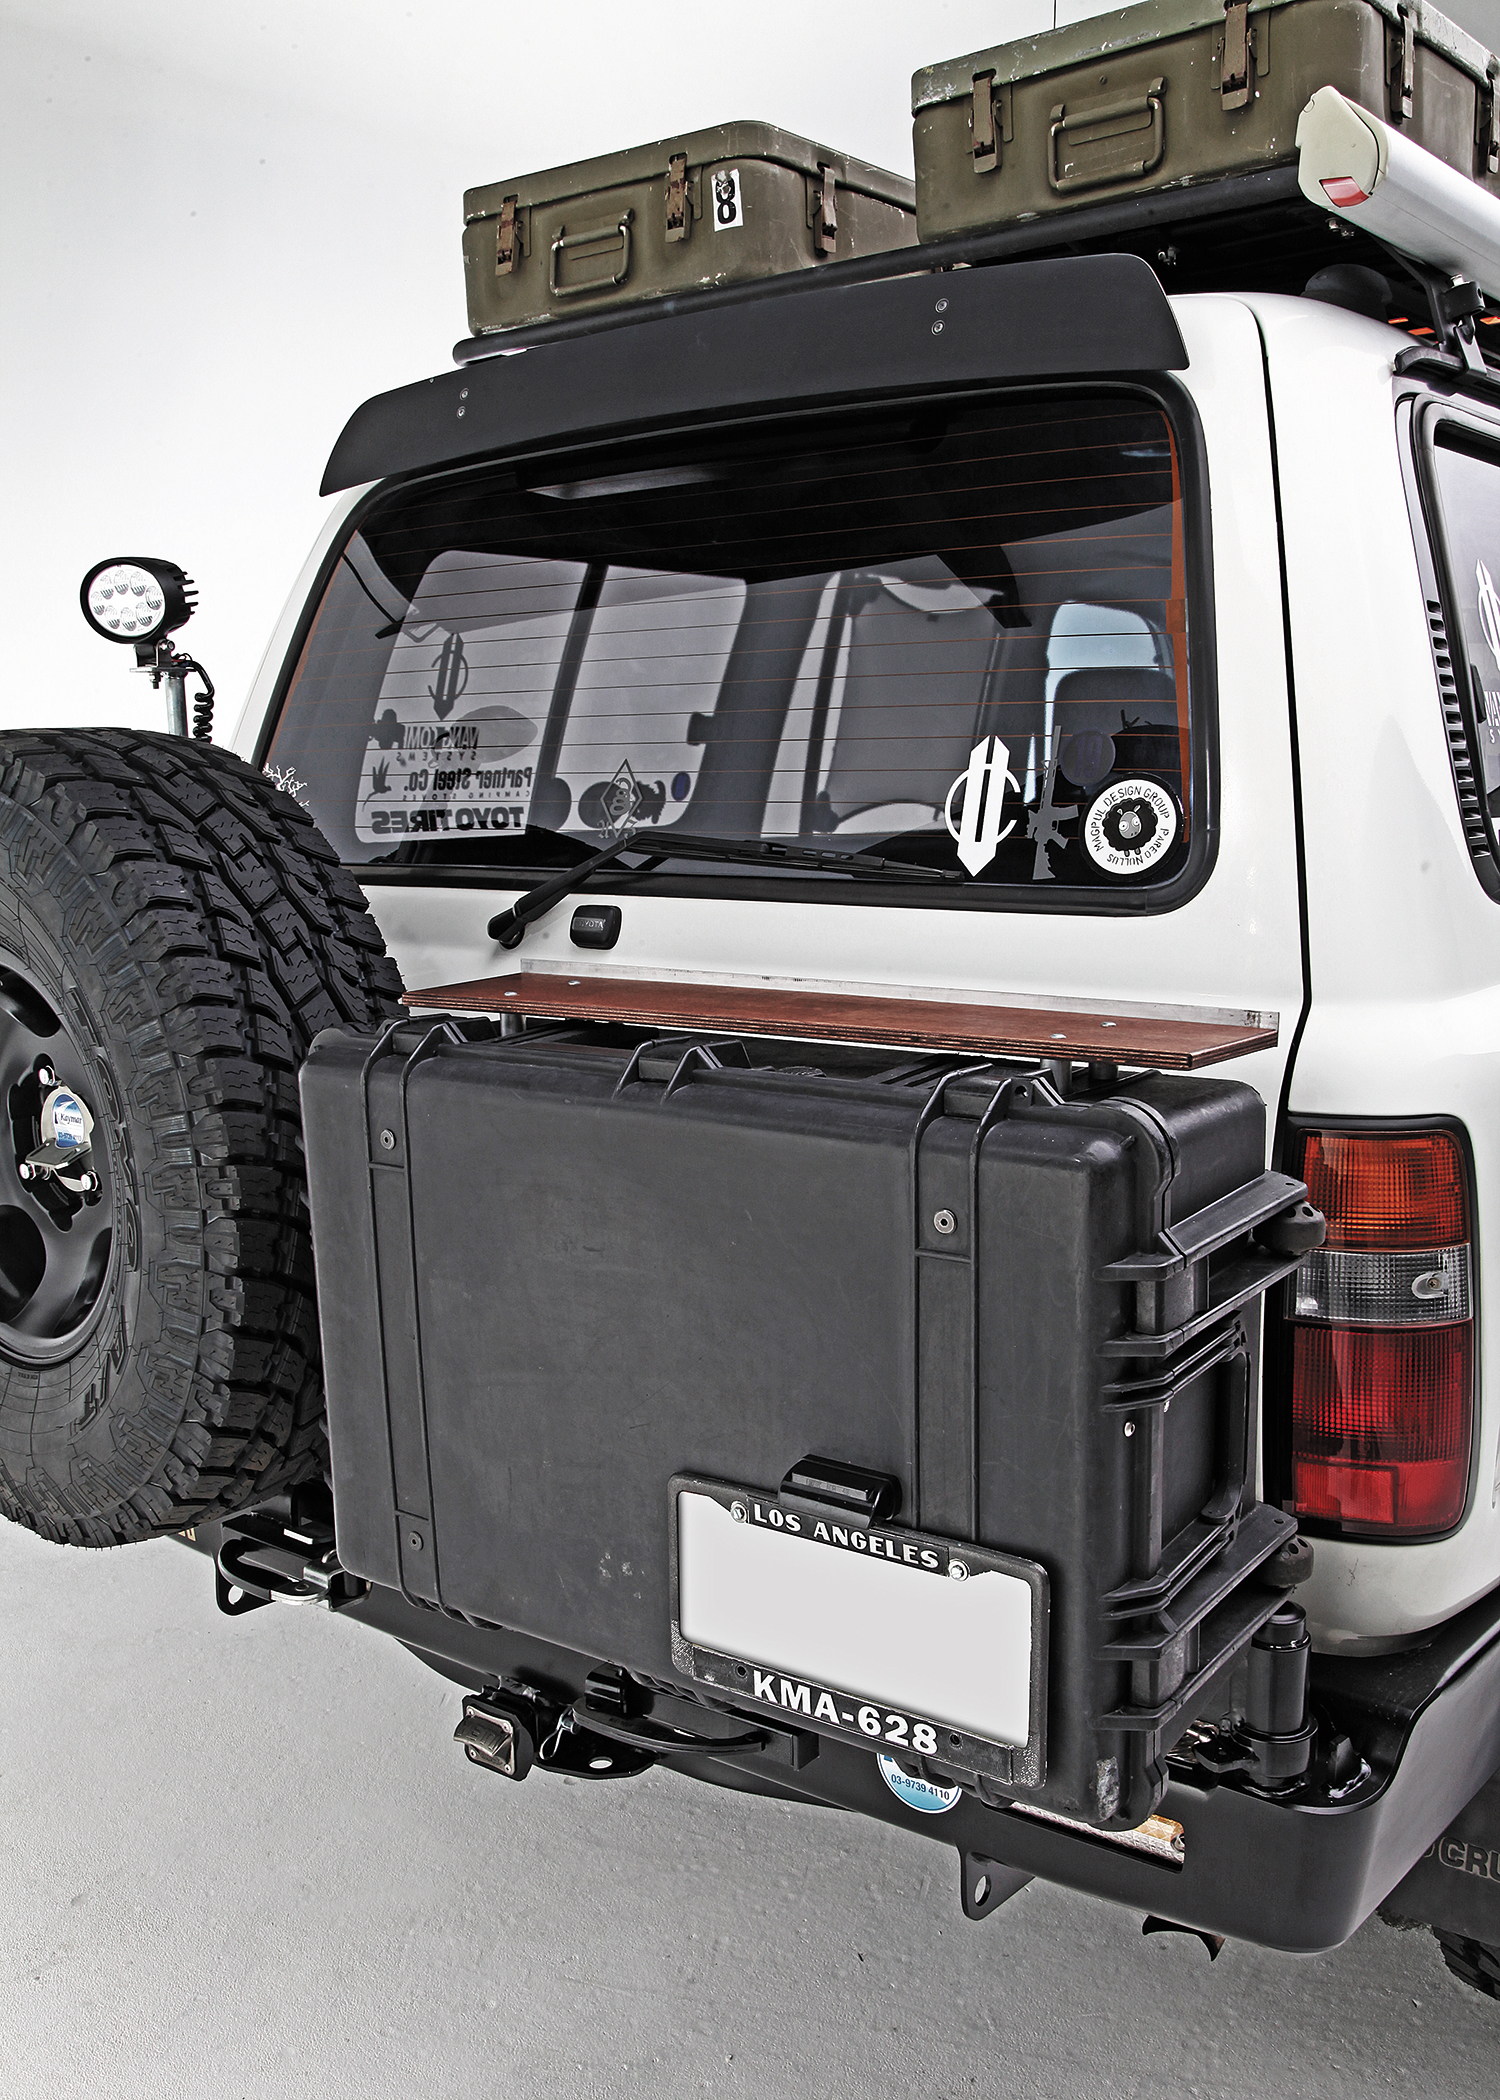 1994 Toyota Land Cruiser Off Grid Rig Recoil Offgrid